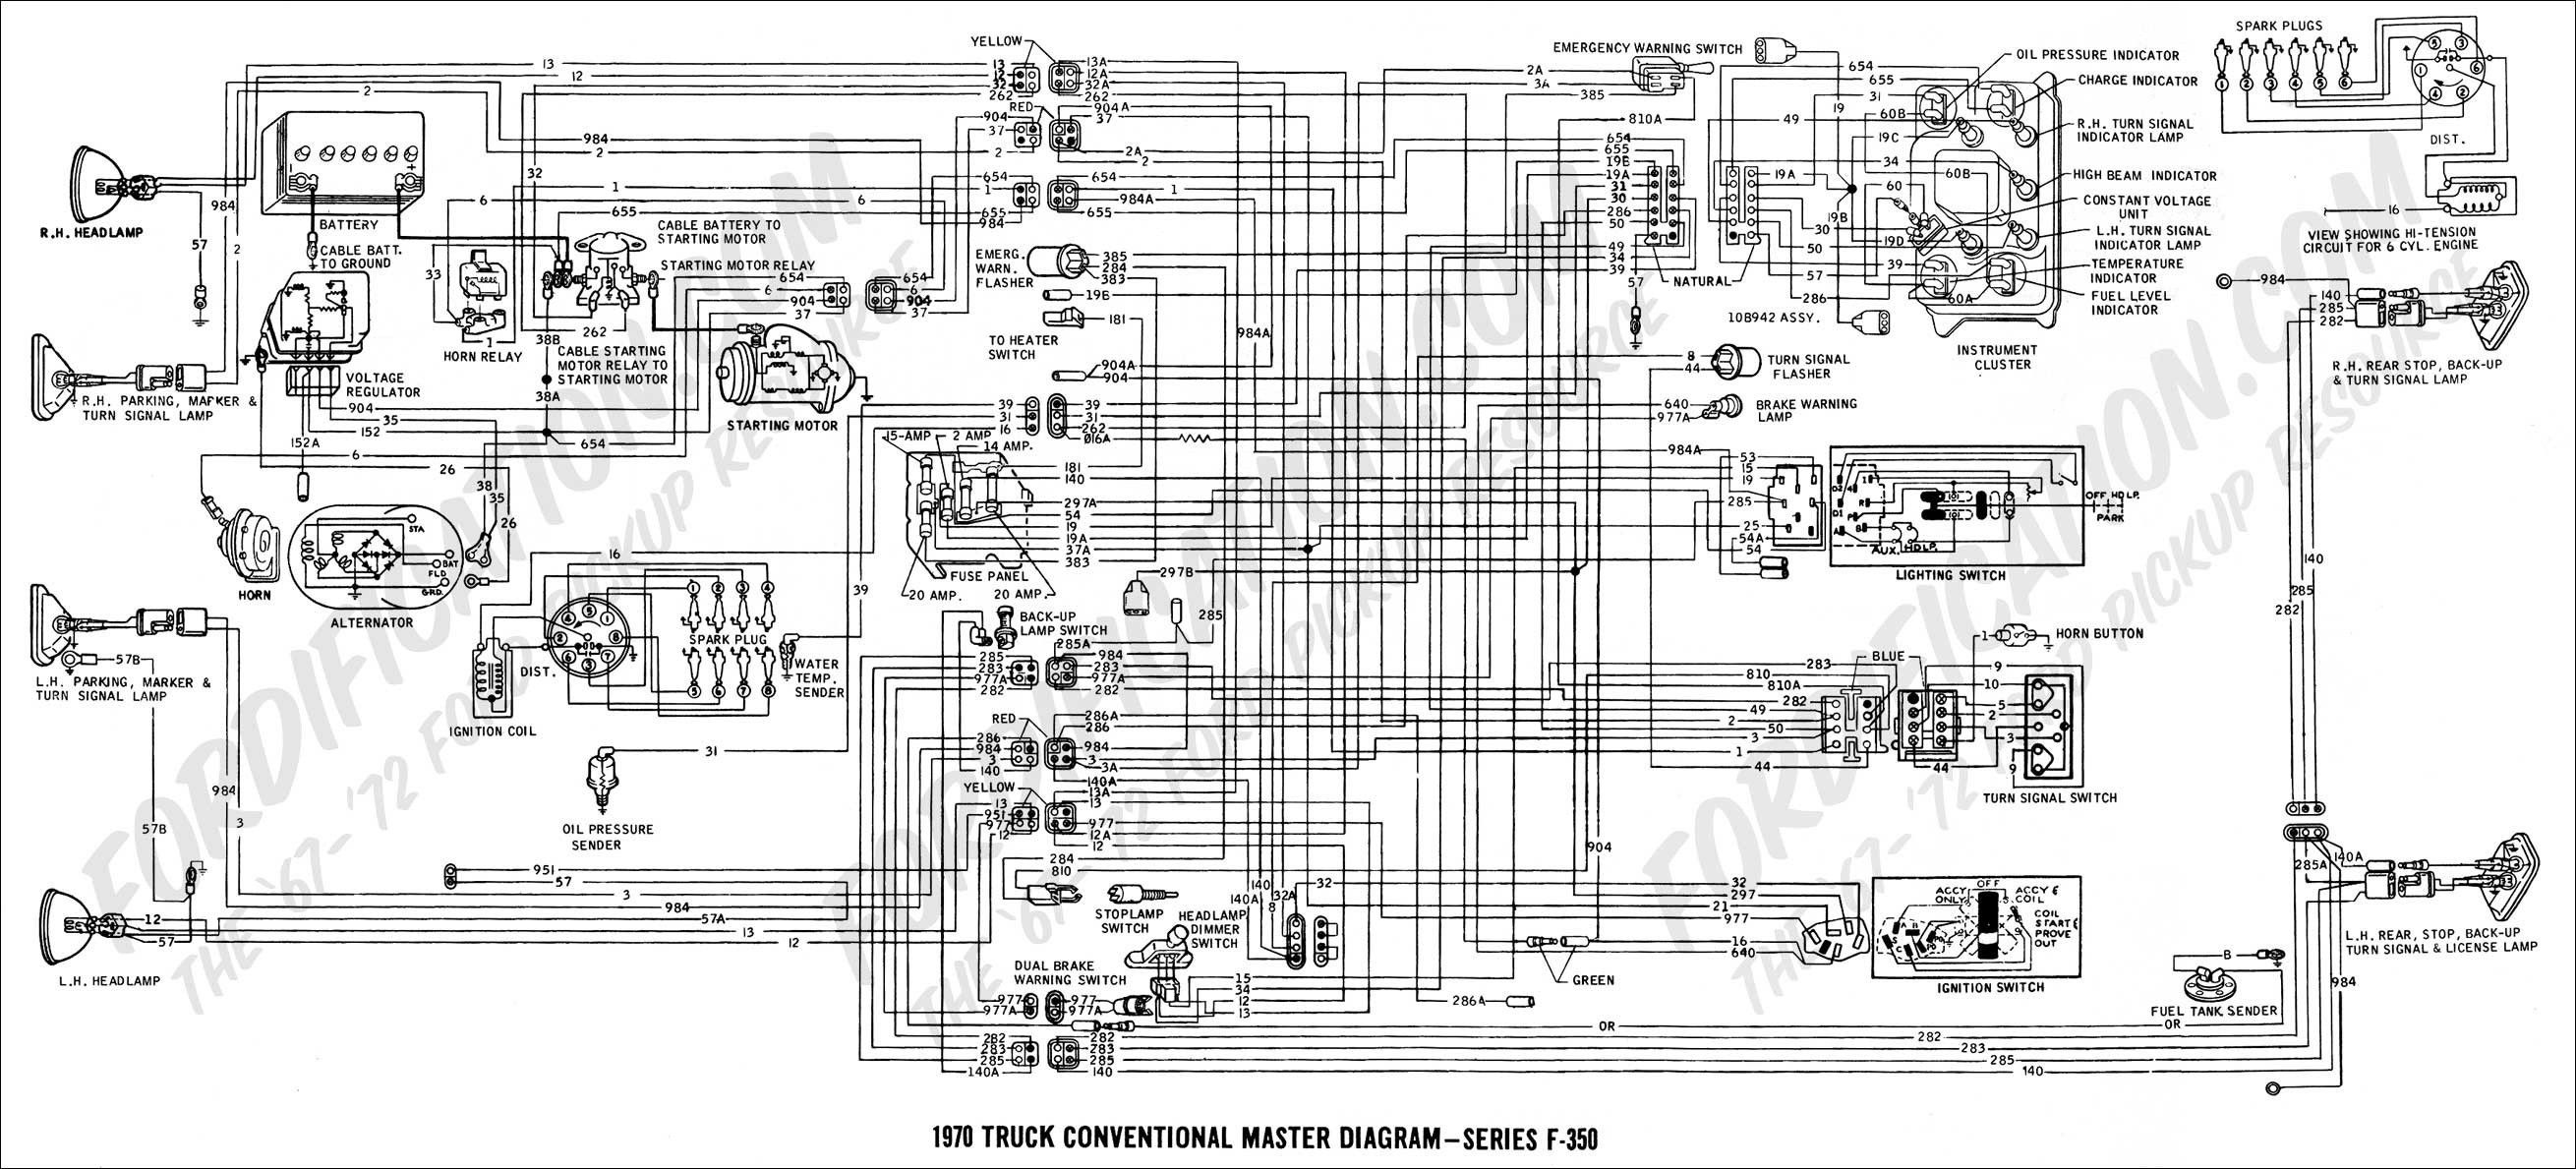 medium resolution of image result for 2006 6 0 powerstroke engine diagram